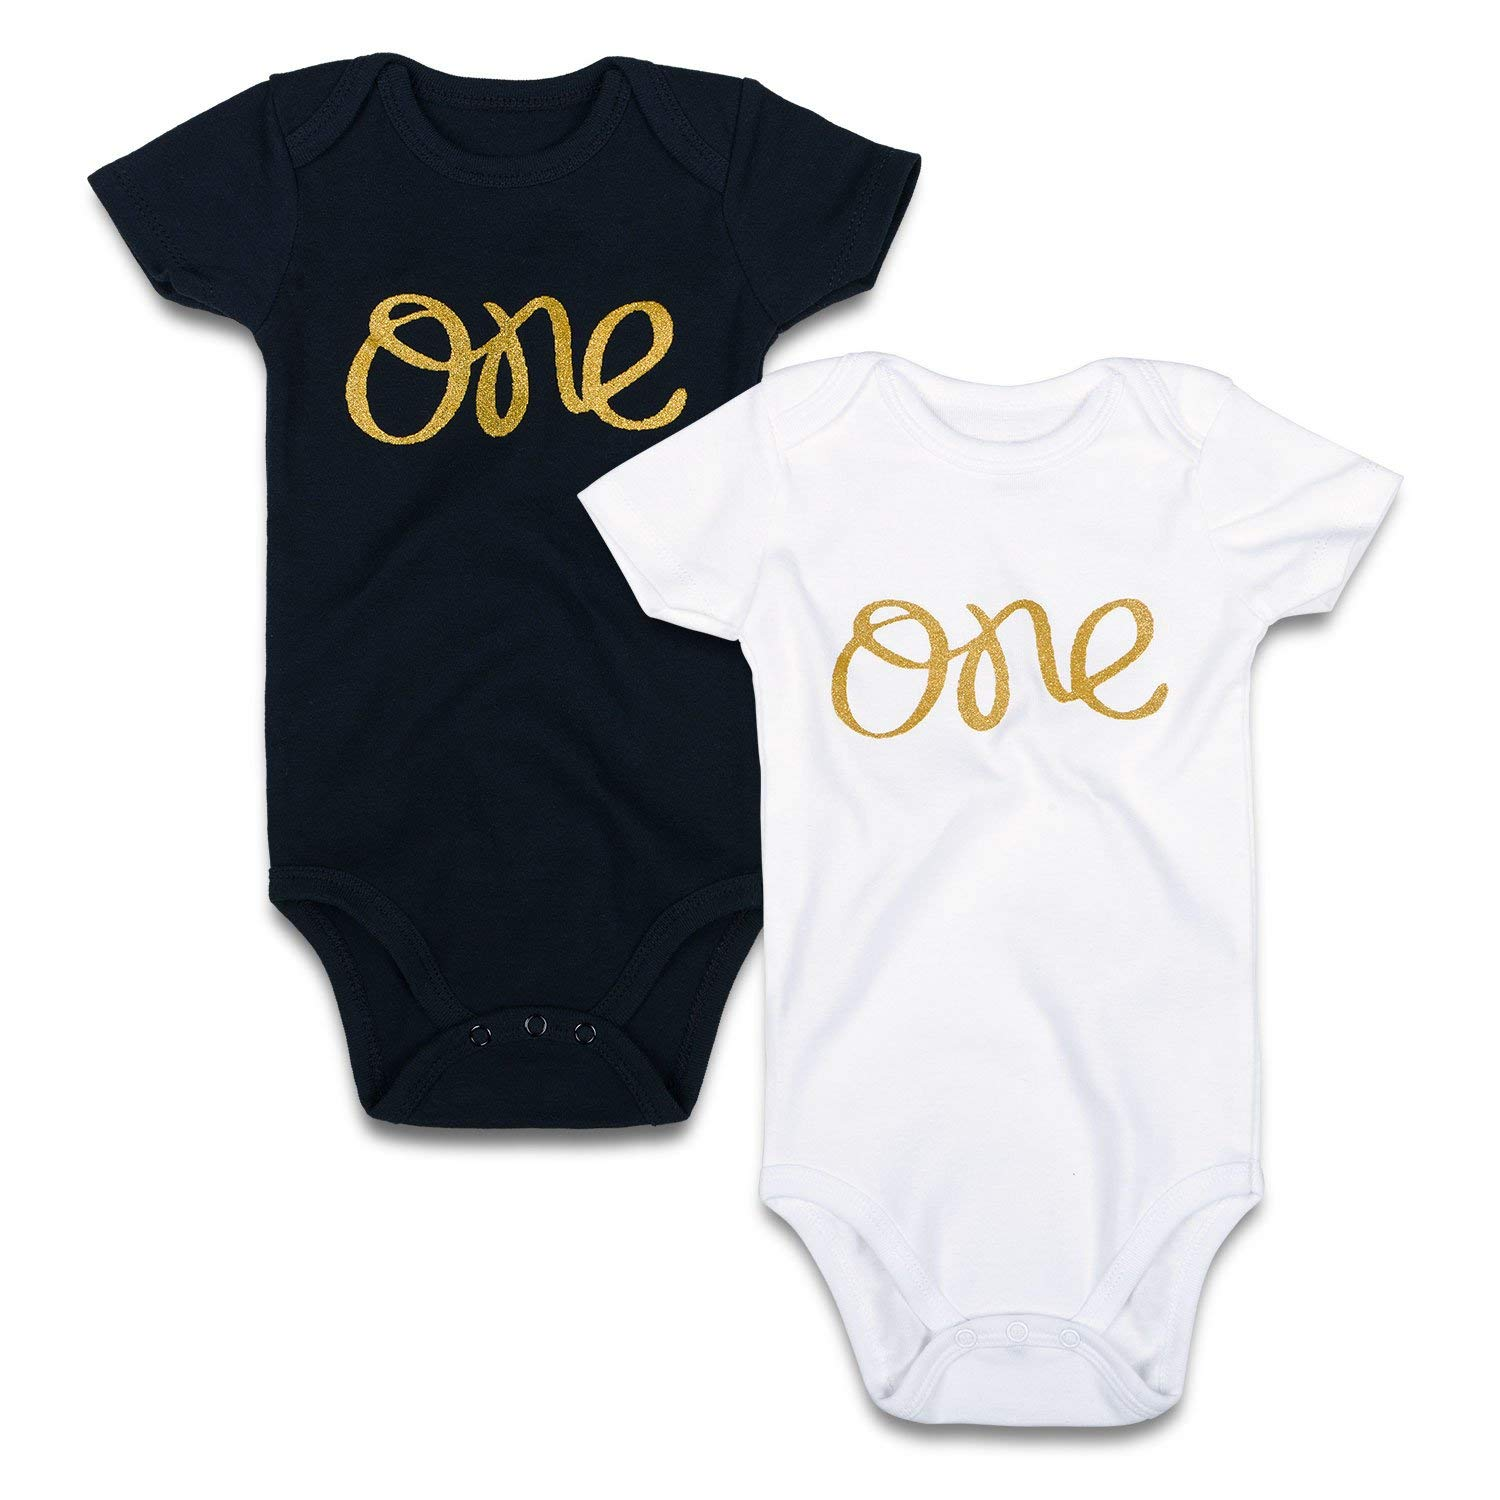 f8b4249a5b9 Get Quotations · SOBOWO Gold One 2-Pack Short Sleeve Bodysuits for Newborn Girls  Boys